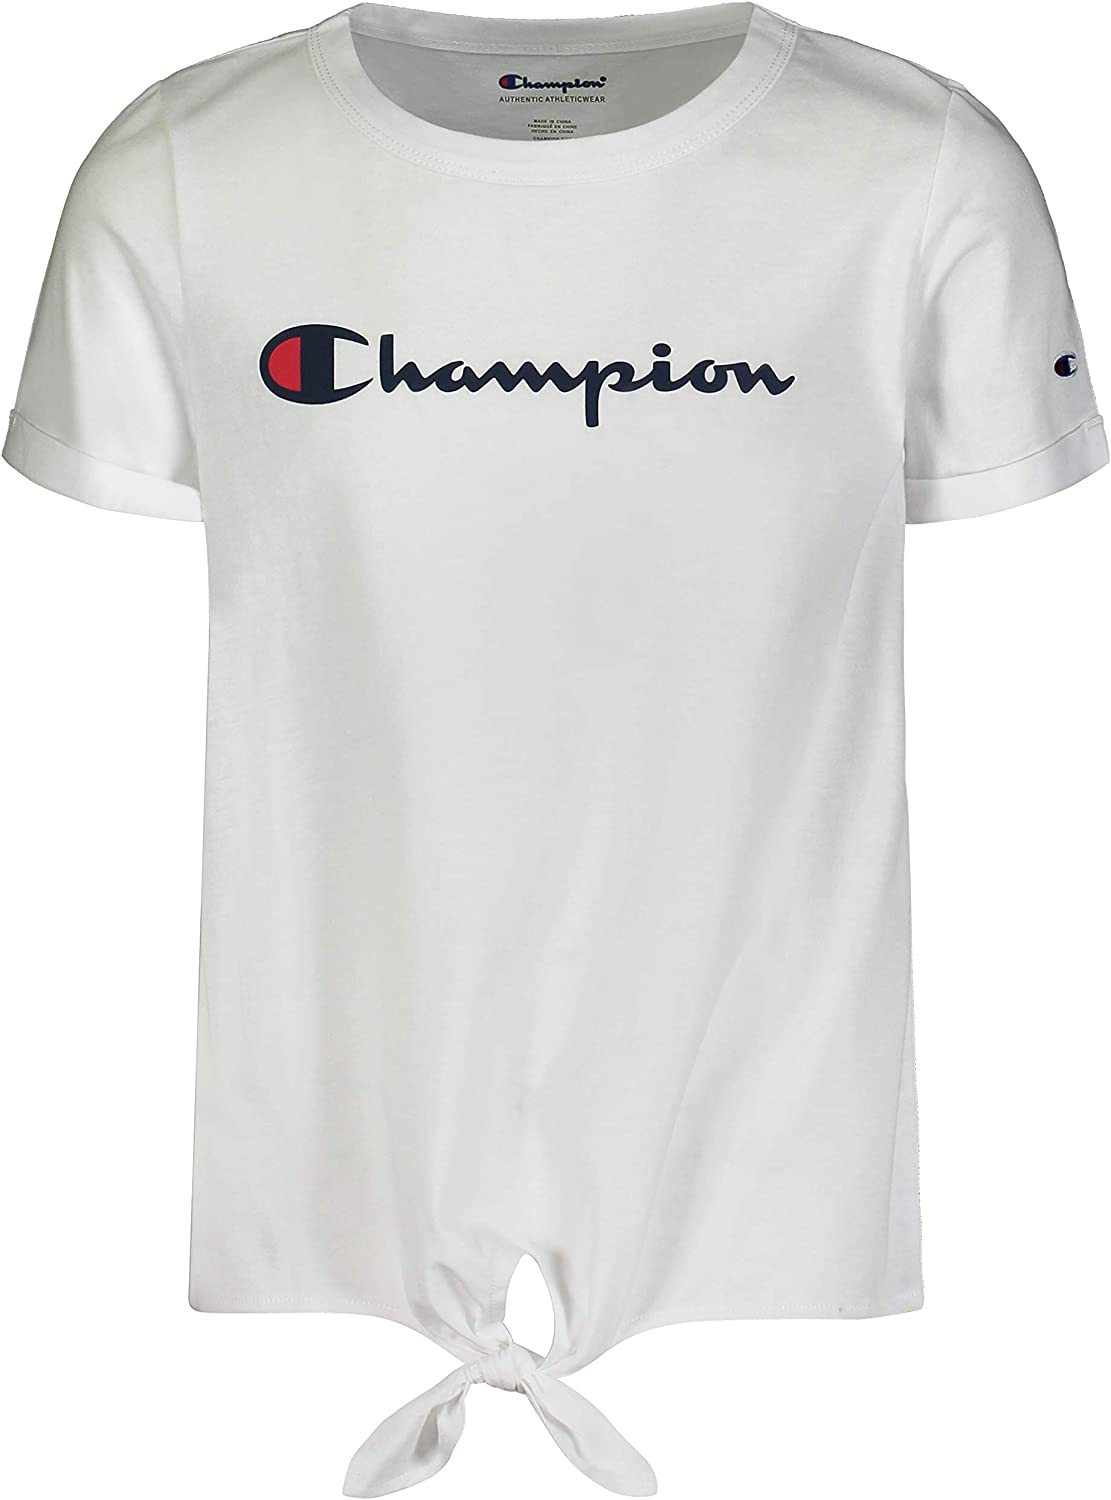 Champion Girls Classic Short Sleeve Rapid rise Tee Colorado Springs Mall Top Shirt with Front Tie